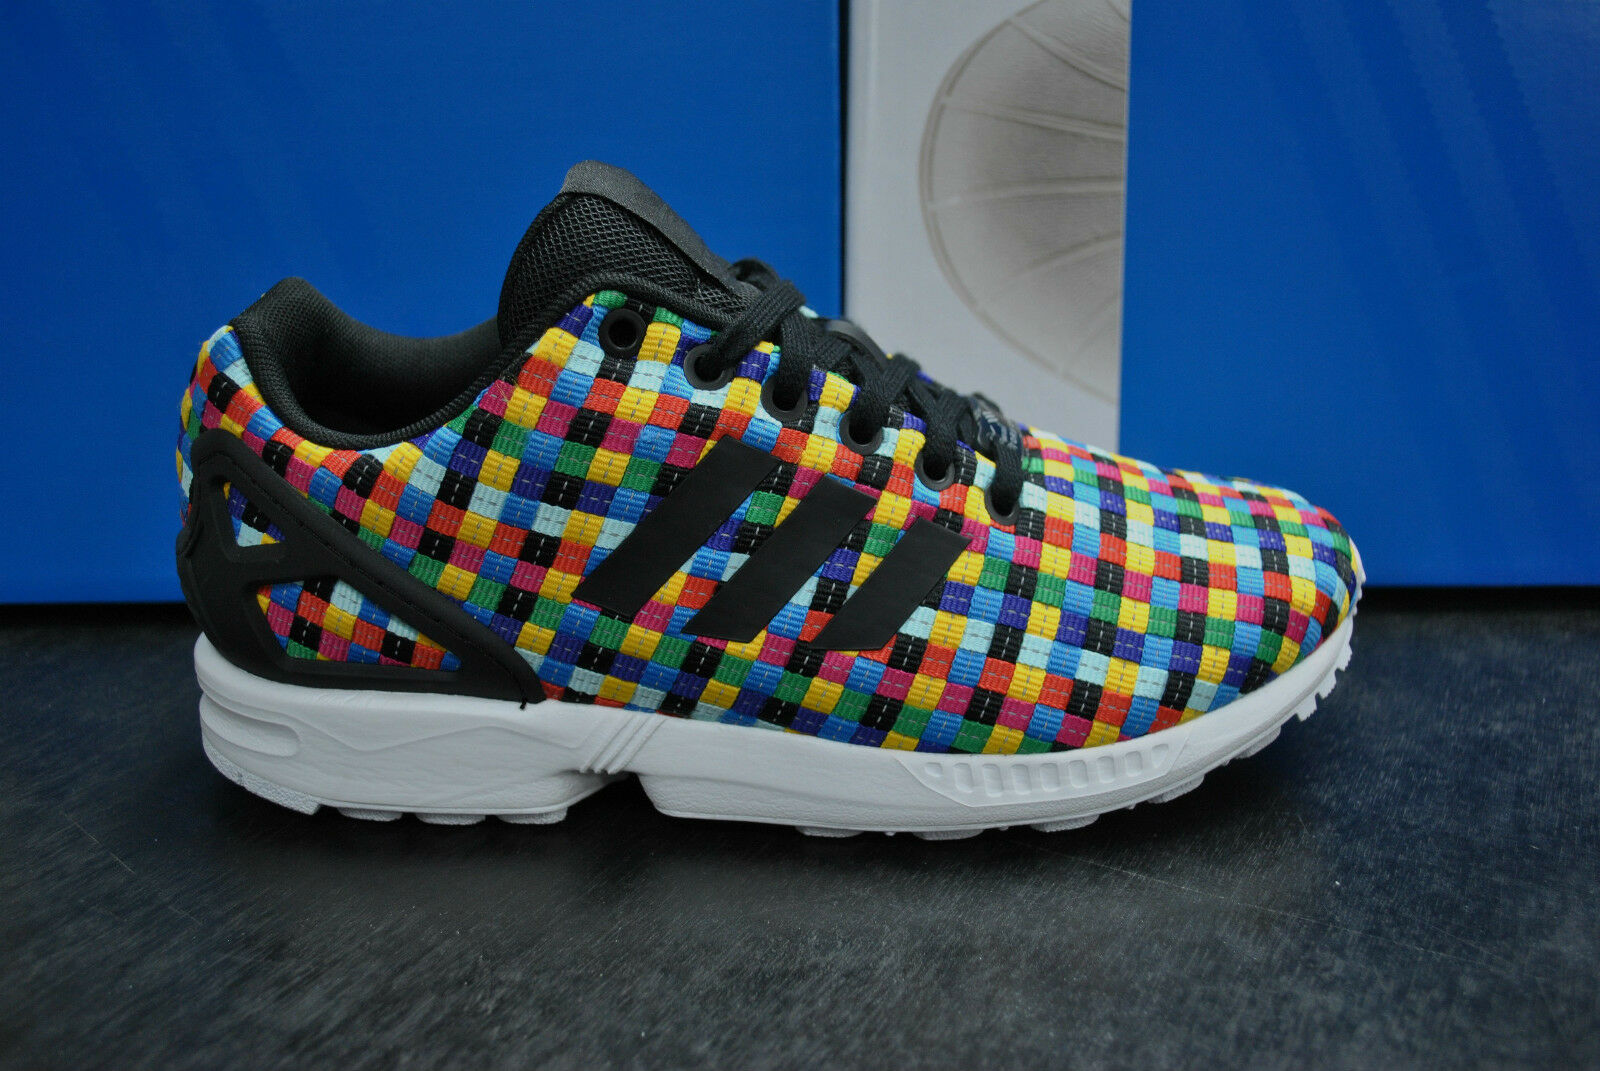 new arrival c1262 6896f ADIDAS ZX FLUX SPORTS RUNNING TRAINERS UNISEX blanc Noir FLYKNIT S82749